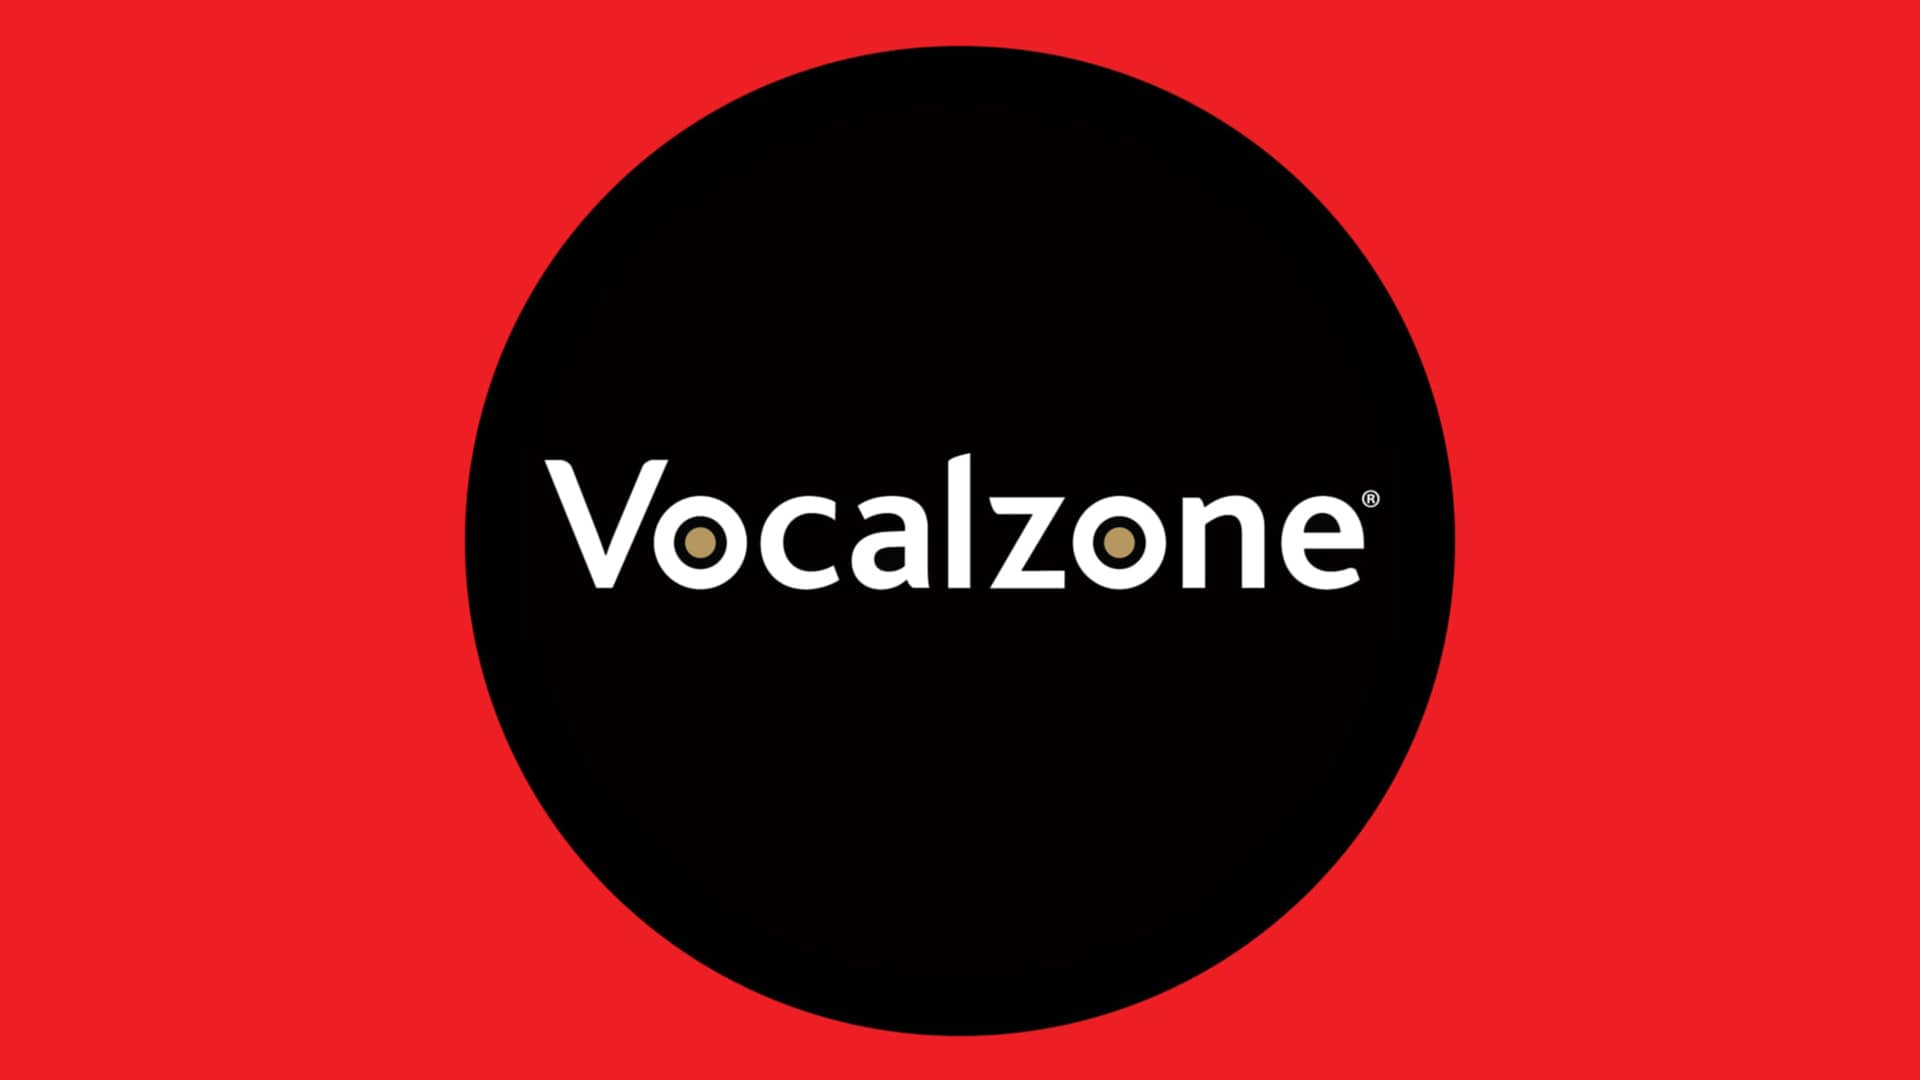 Public Address Announcer Vocalzone